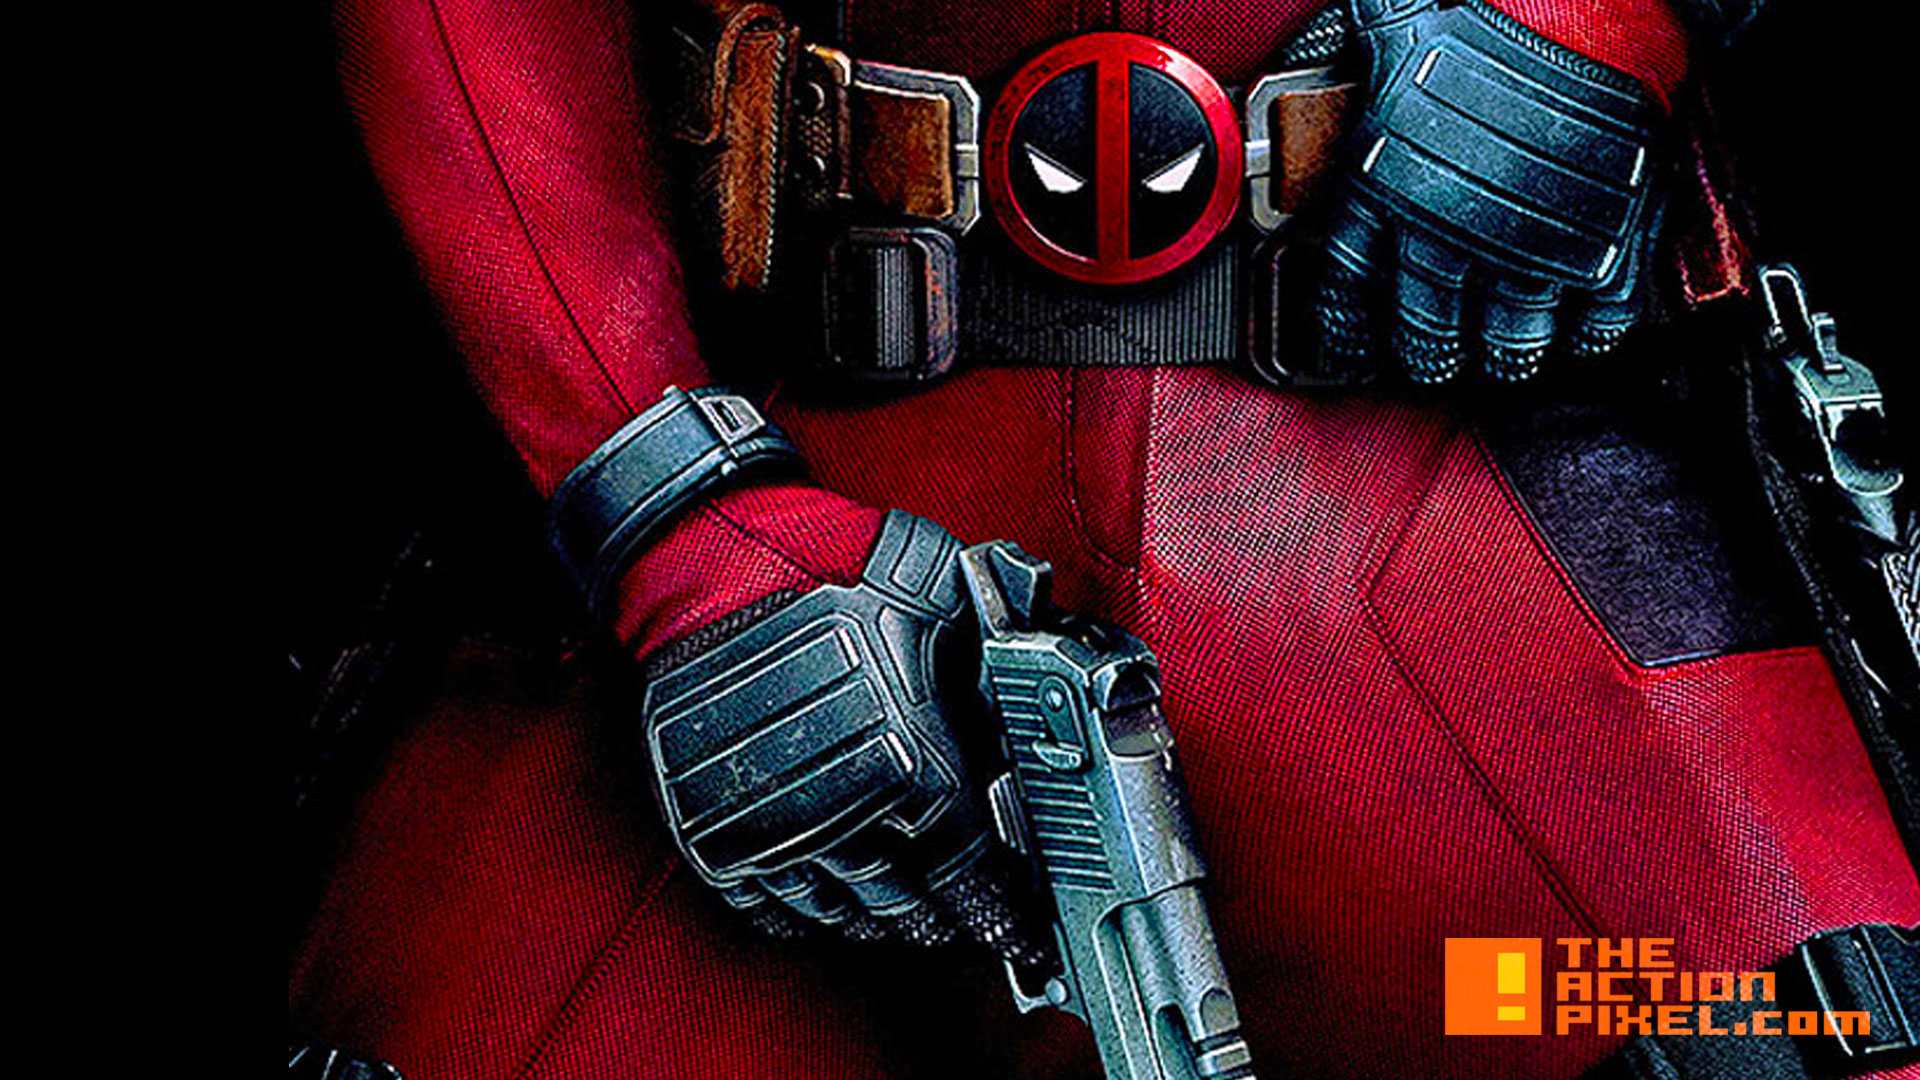 deadpool poster. #12daysofChristmas. 20th century fox. marvel. the action pixel. @theactionpixel